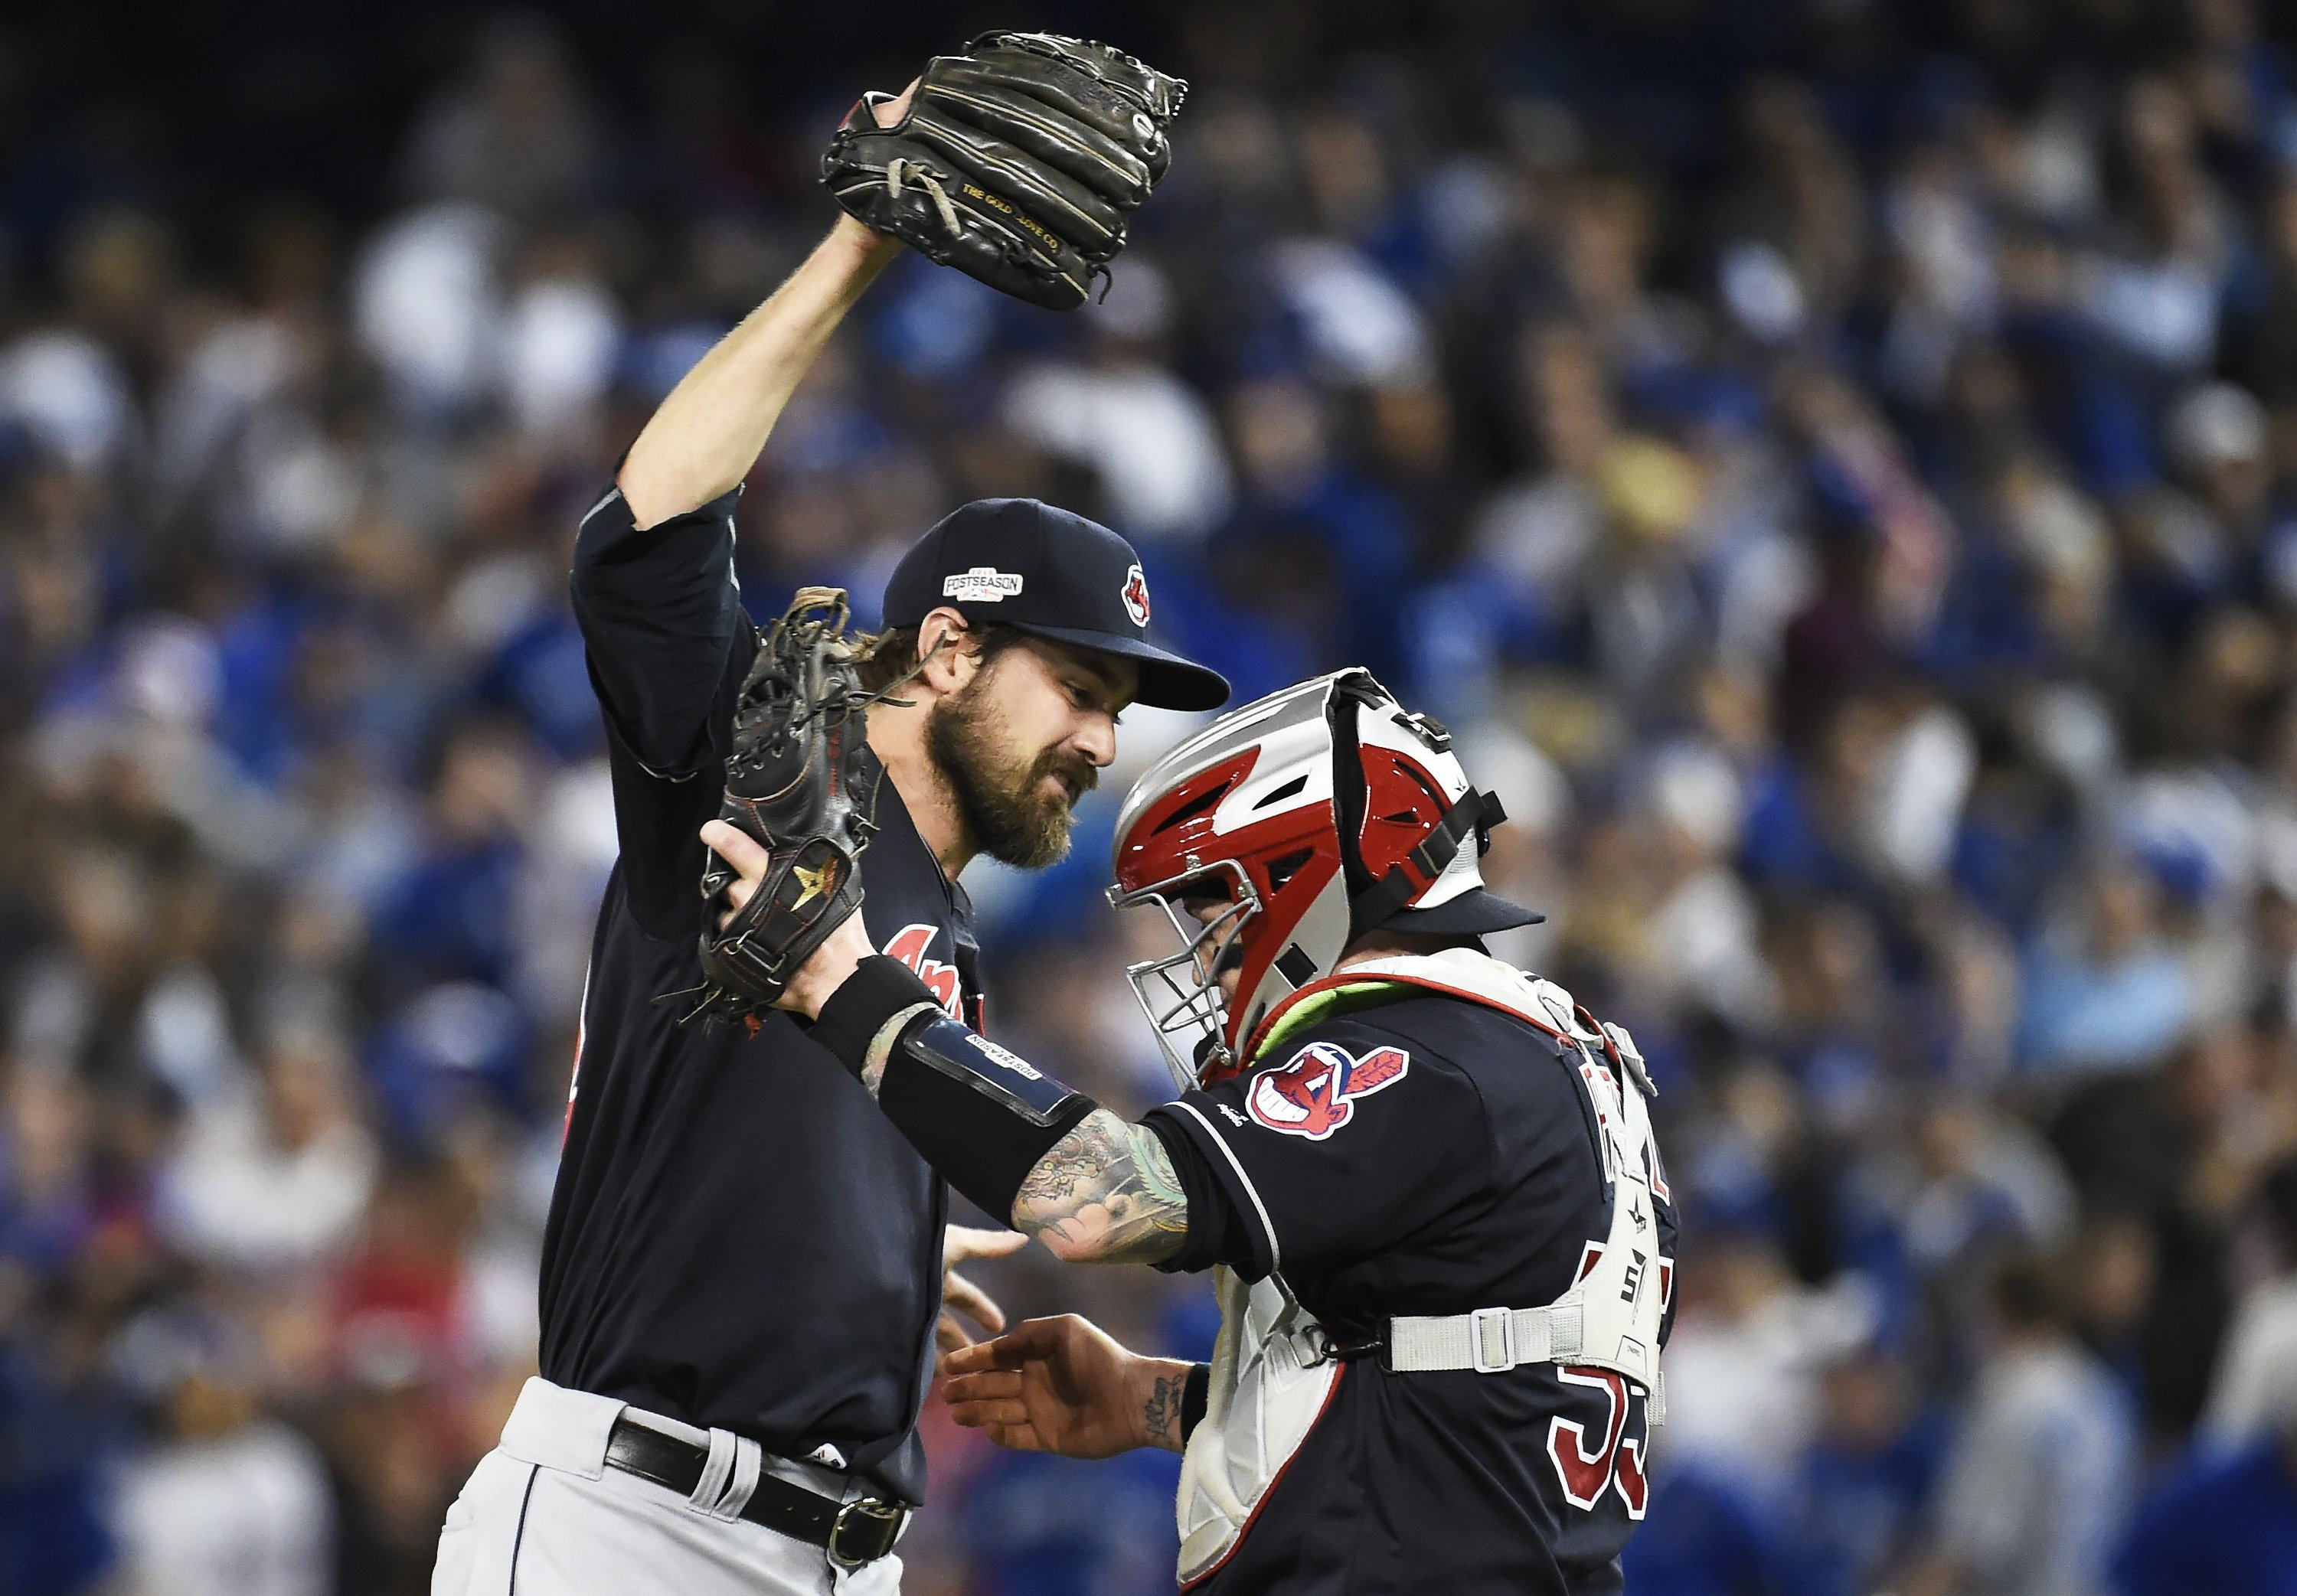 Bullpen great again, Indians top Blue Jays for 3-0 ALCS lead